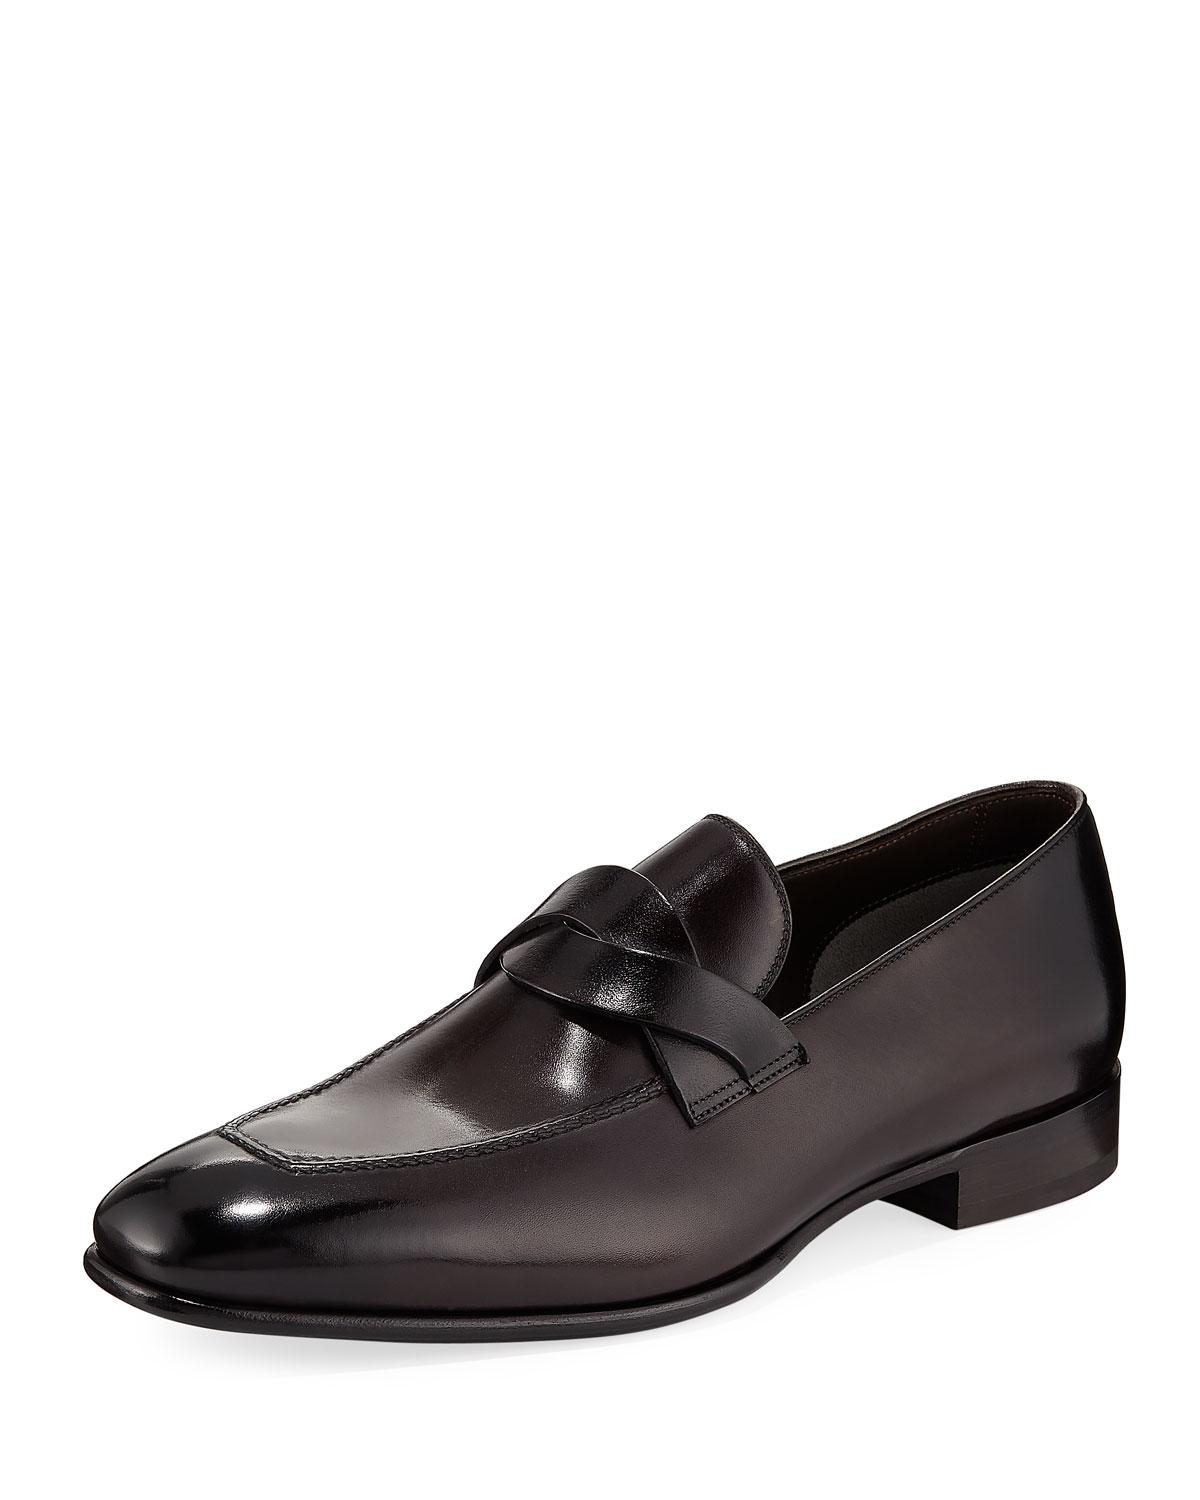 f623c174c59 Lyst - Tom Ford Classic Loafers in Black for Men